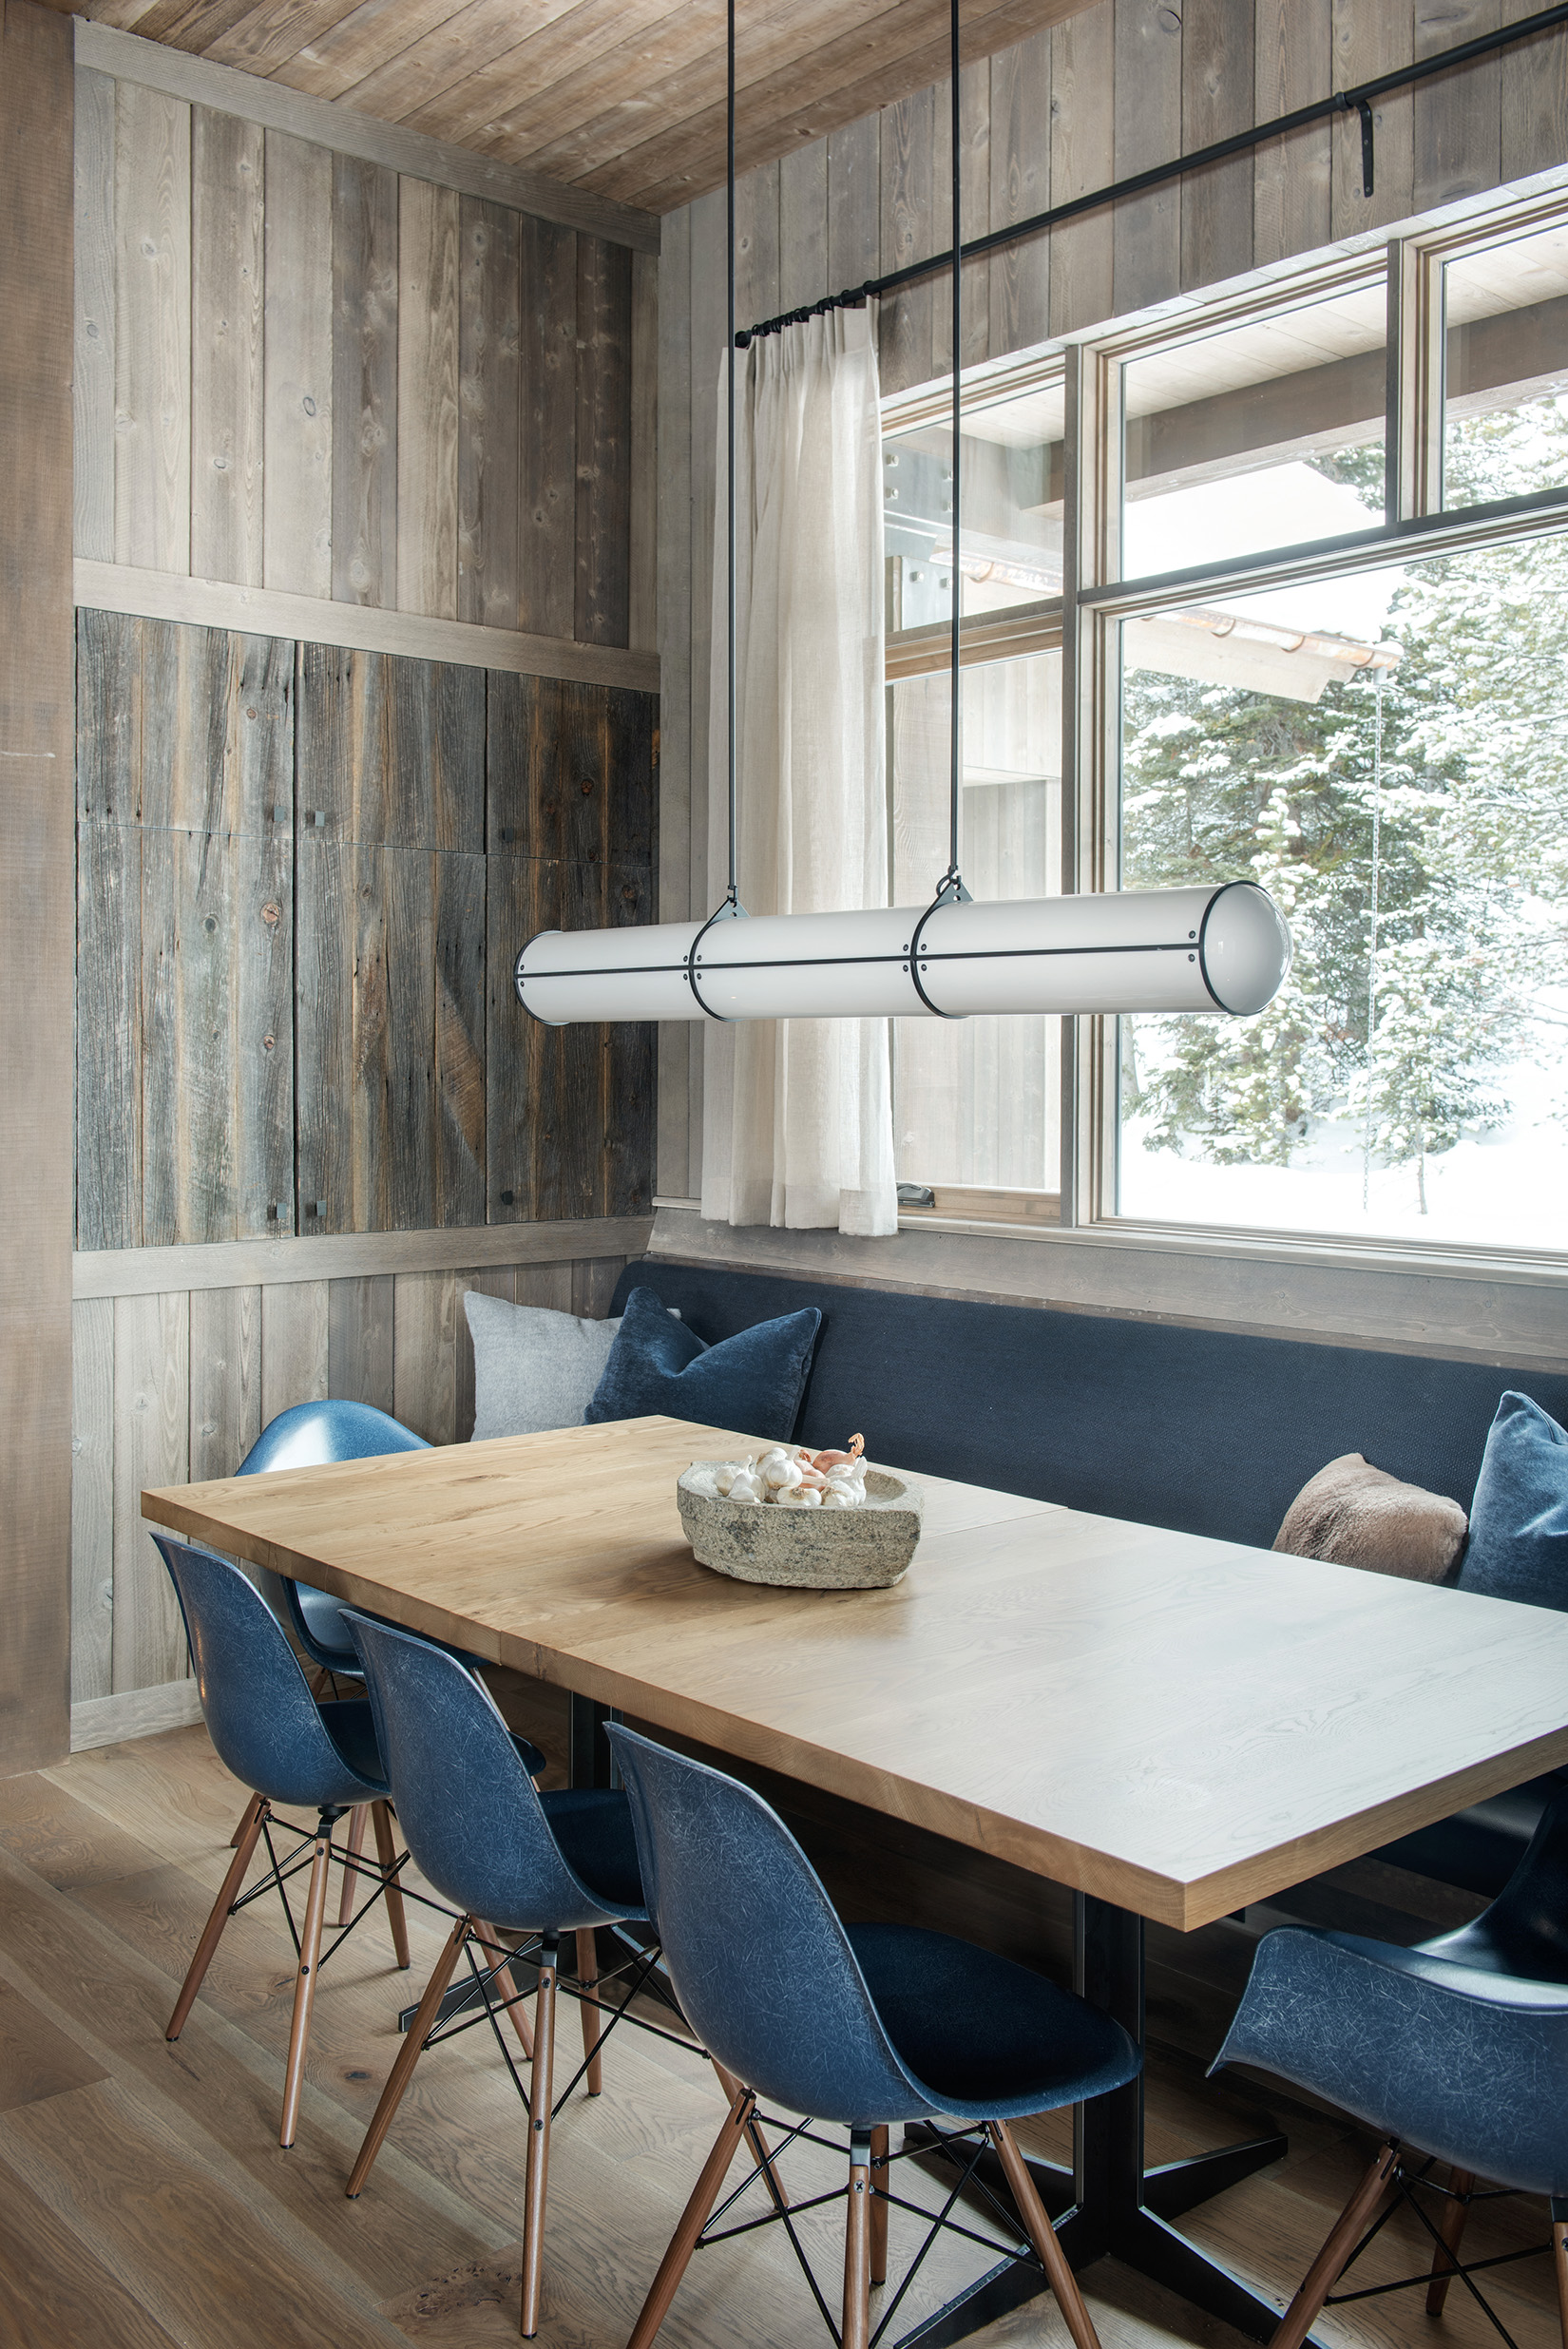 The dining nook was one of my favorite spots in the house. The rustic wood beams and modern lights and furnishings compliment each other very well!